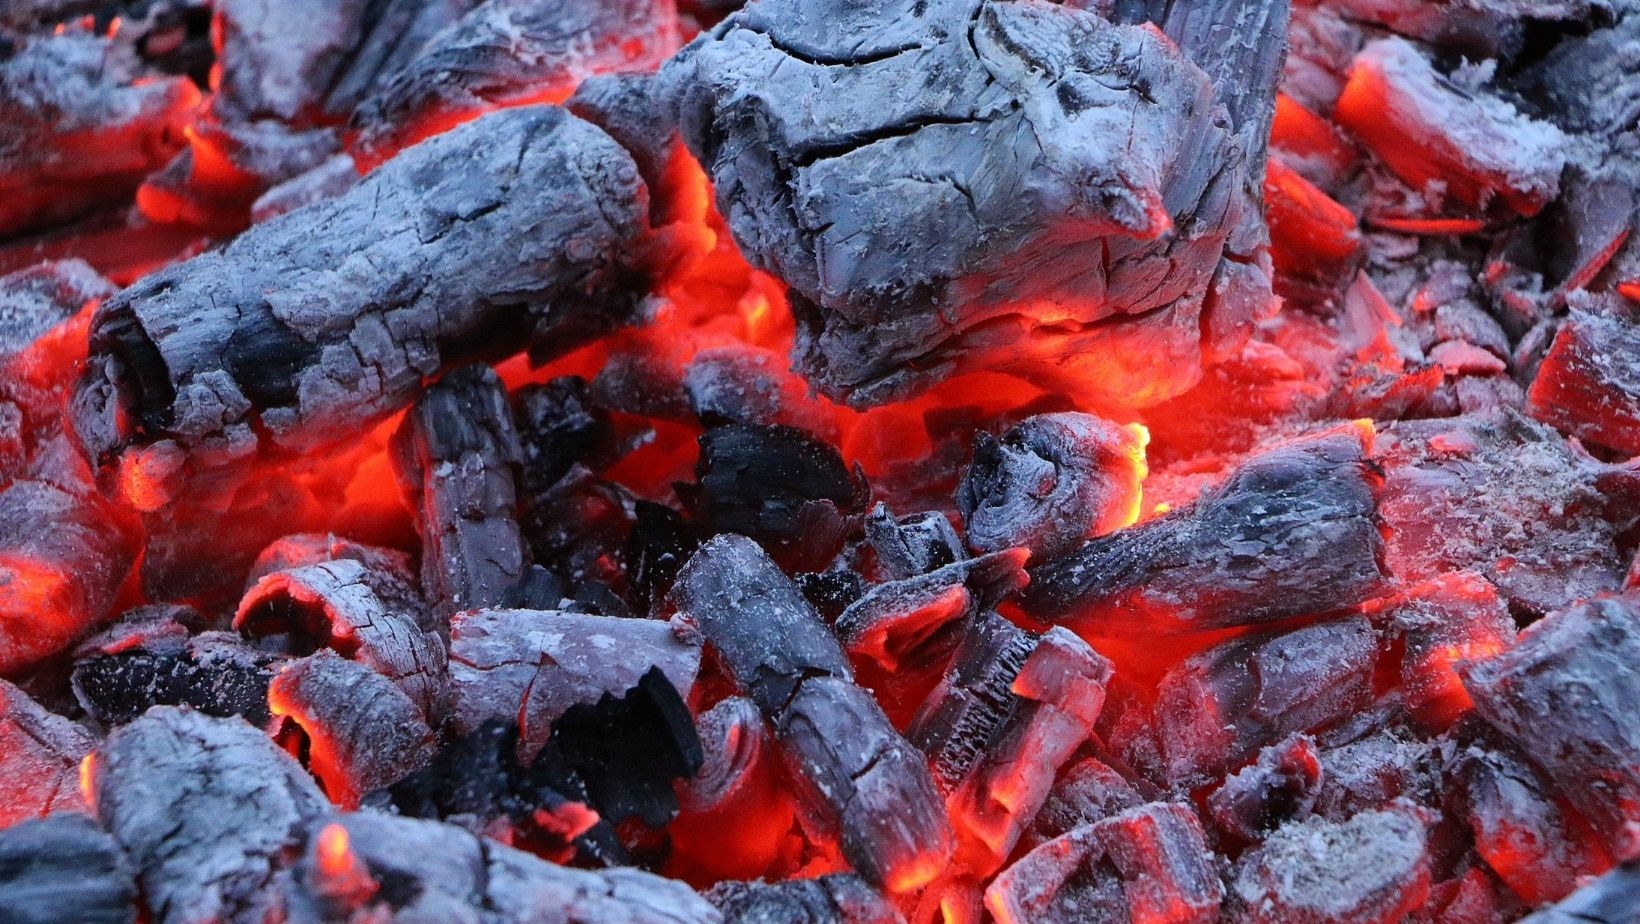 Burning charcoal is a source of carbon monoxide in RVs.